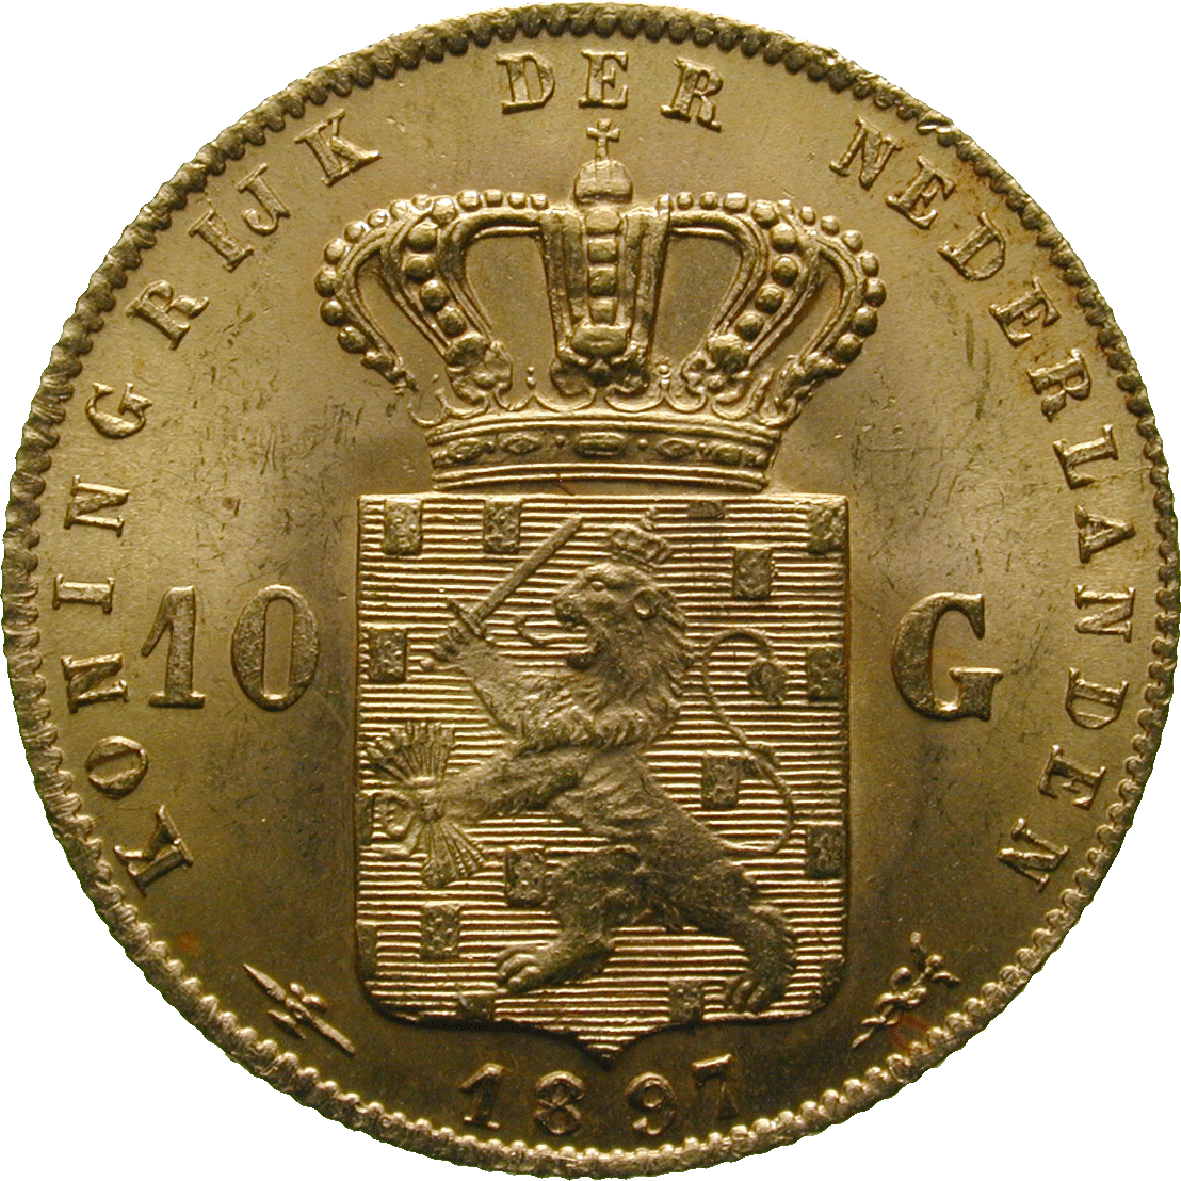 Kingdom of the Netherlands, Wilhelmina, 10 Gulden 1897 (reverse)